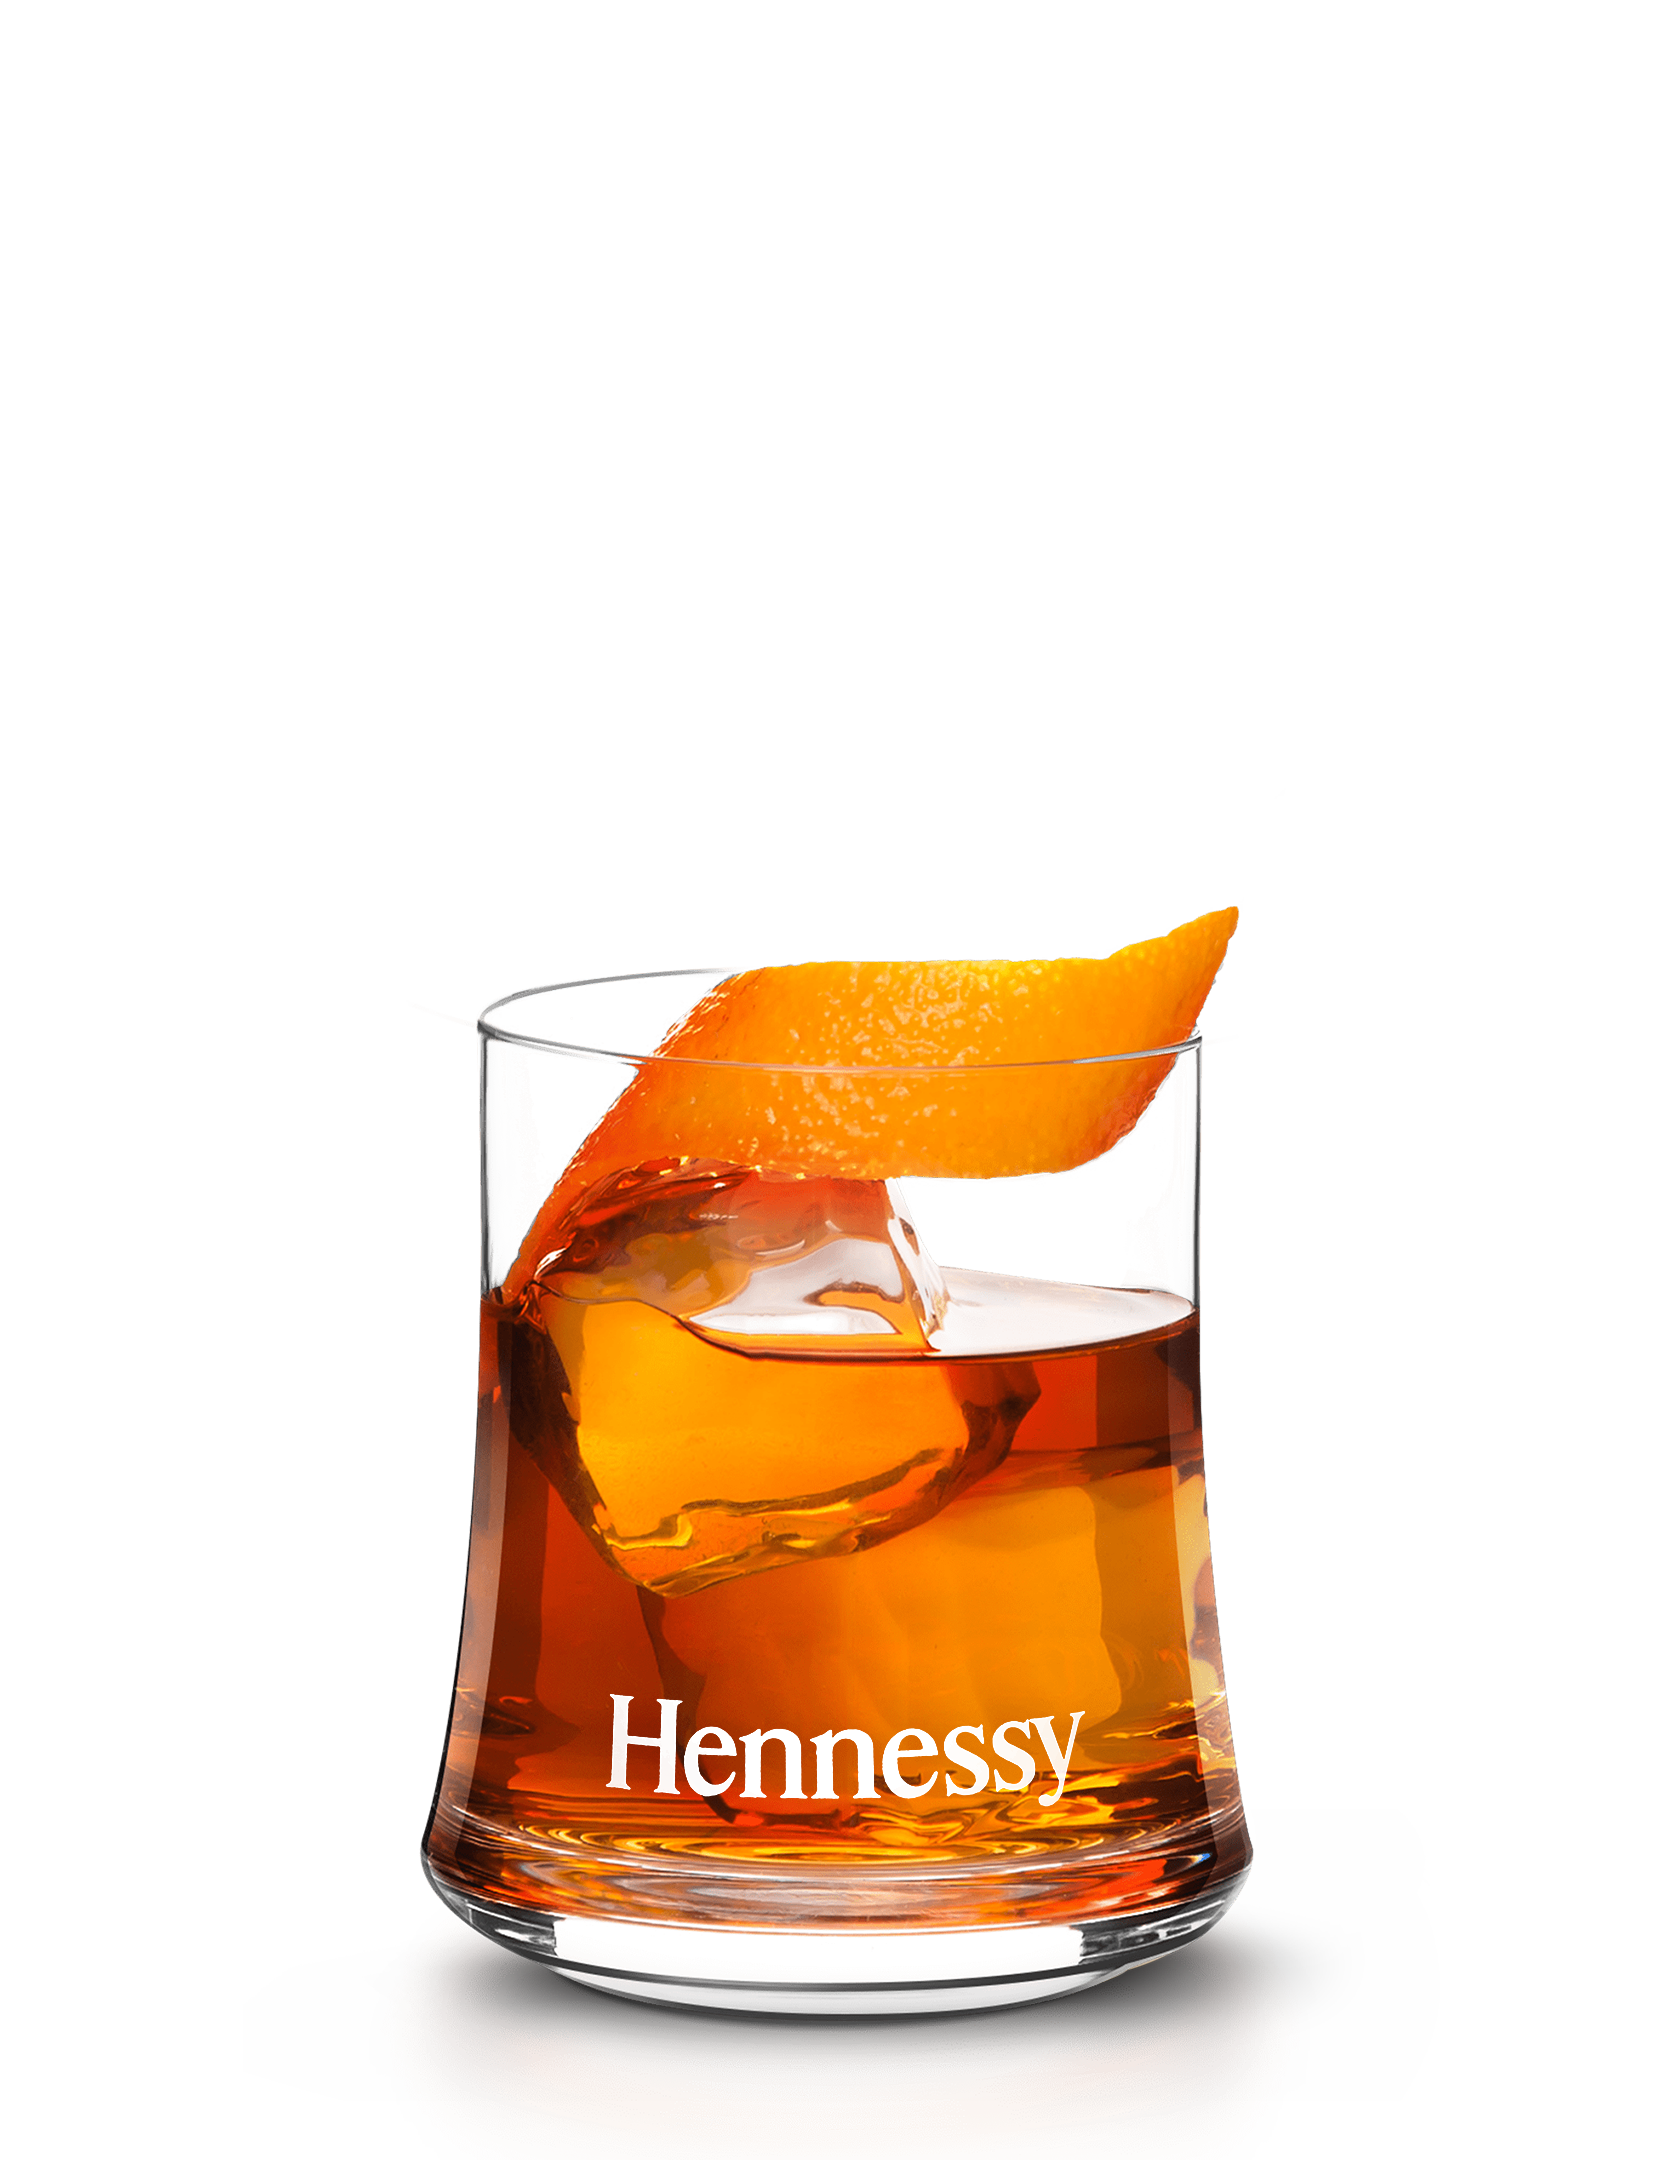 NBA cocktail, the Hennessy Old Fashioned On-court, featuring Hennessy cognac